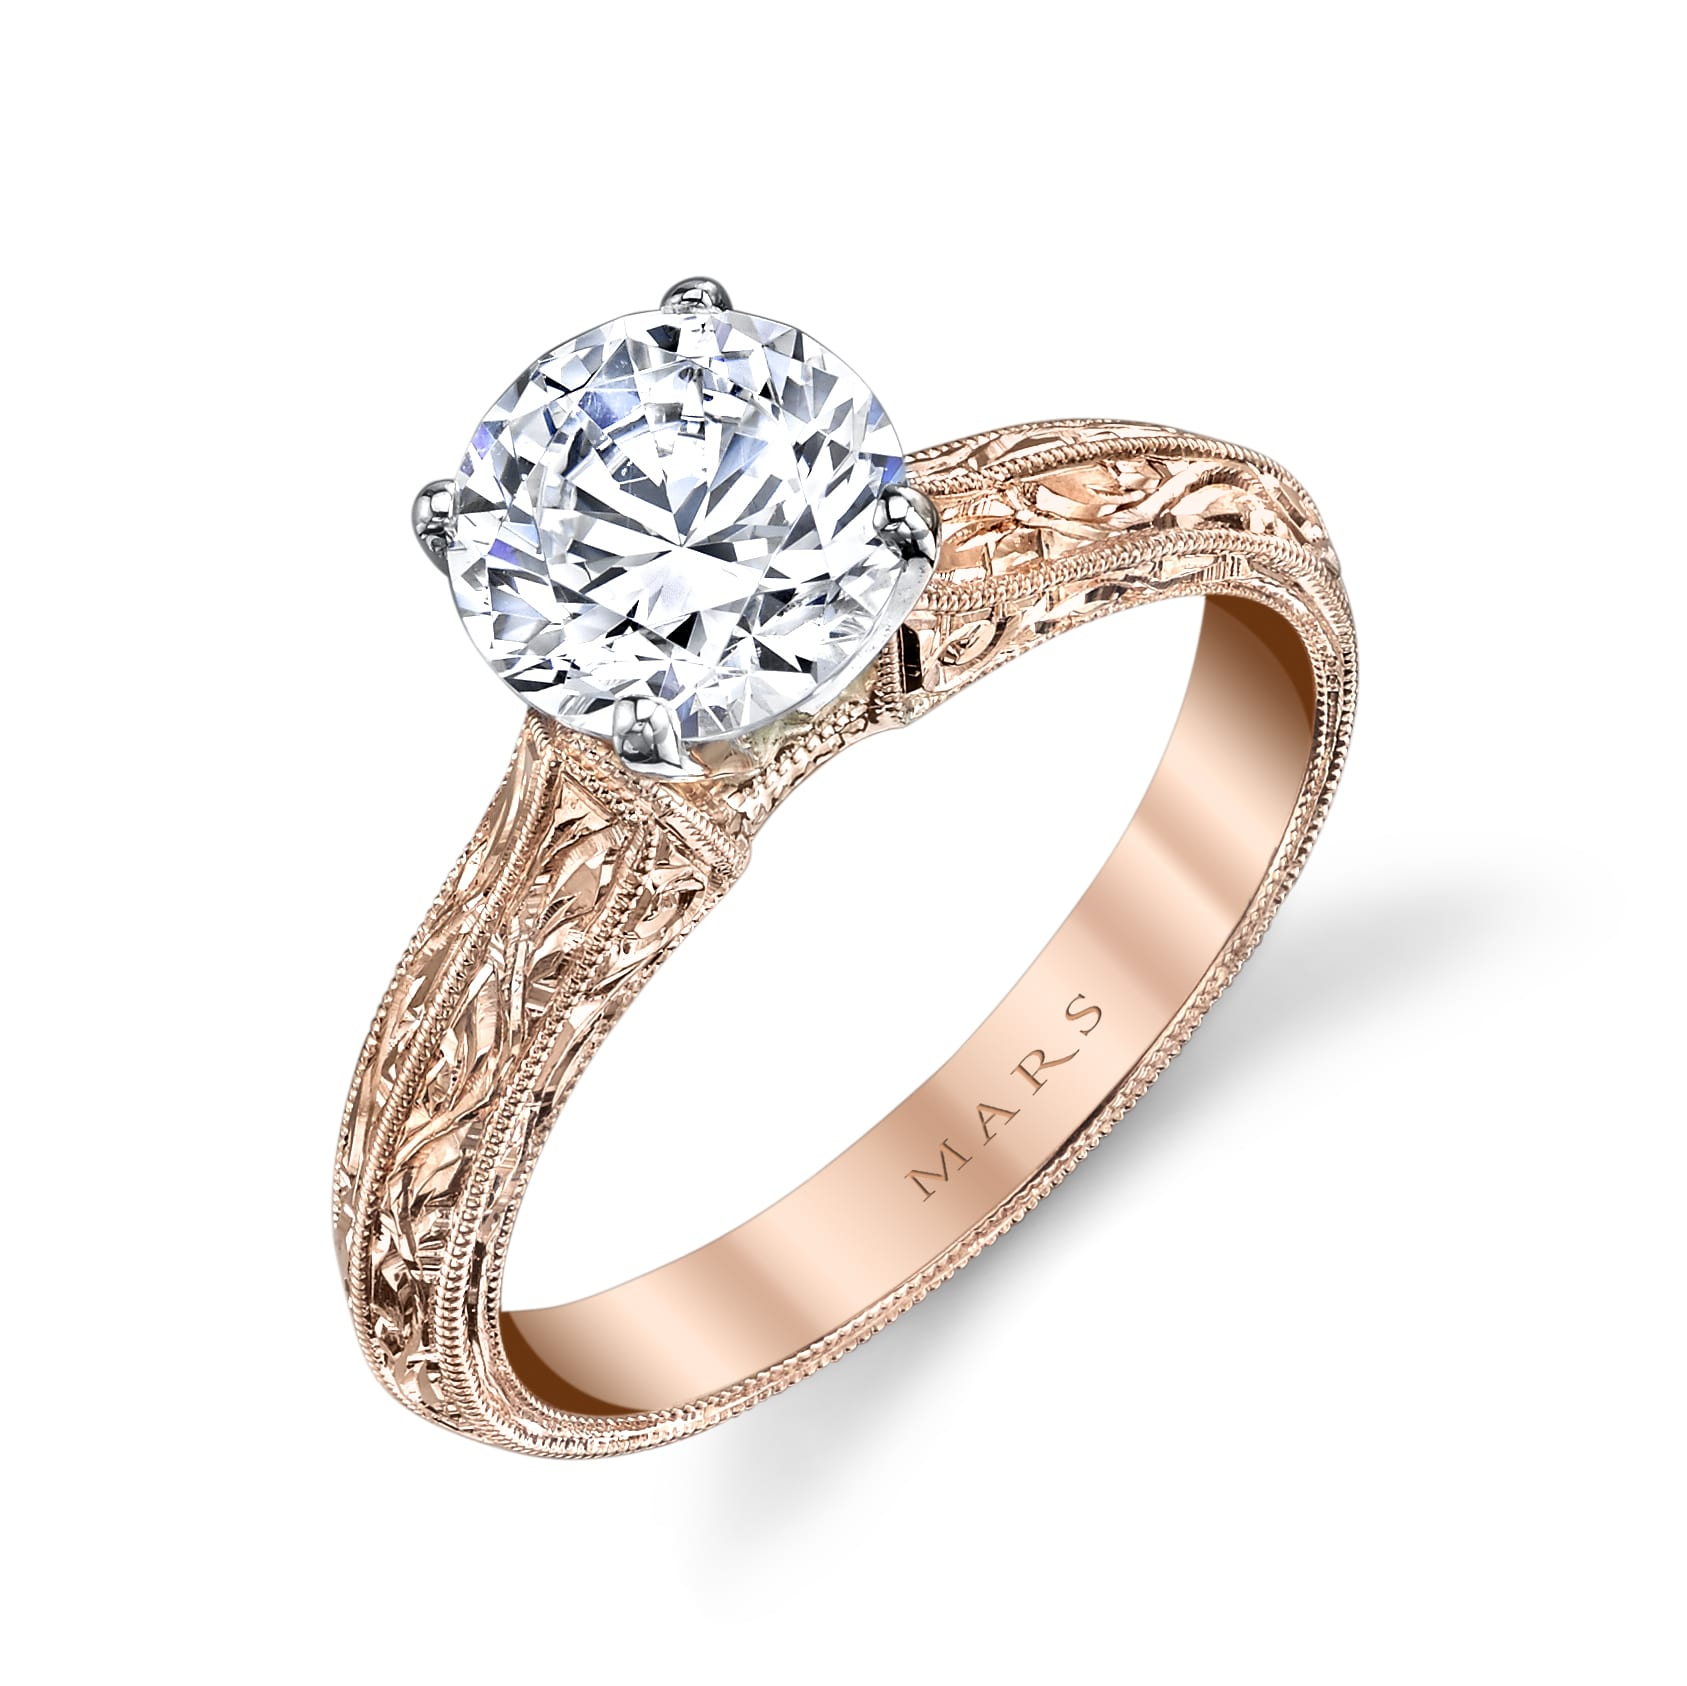 Solitaire Engagement RingStyle #: MARS 13179HE